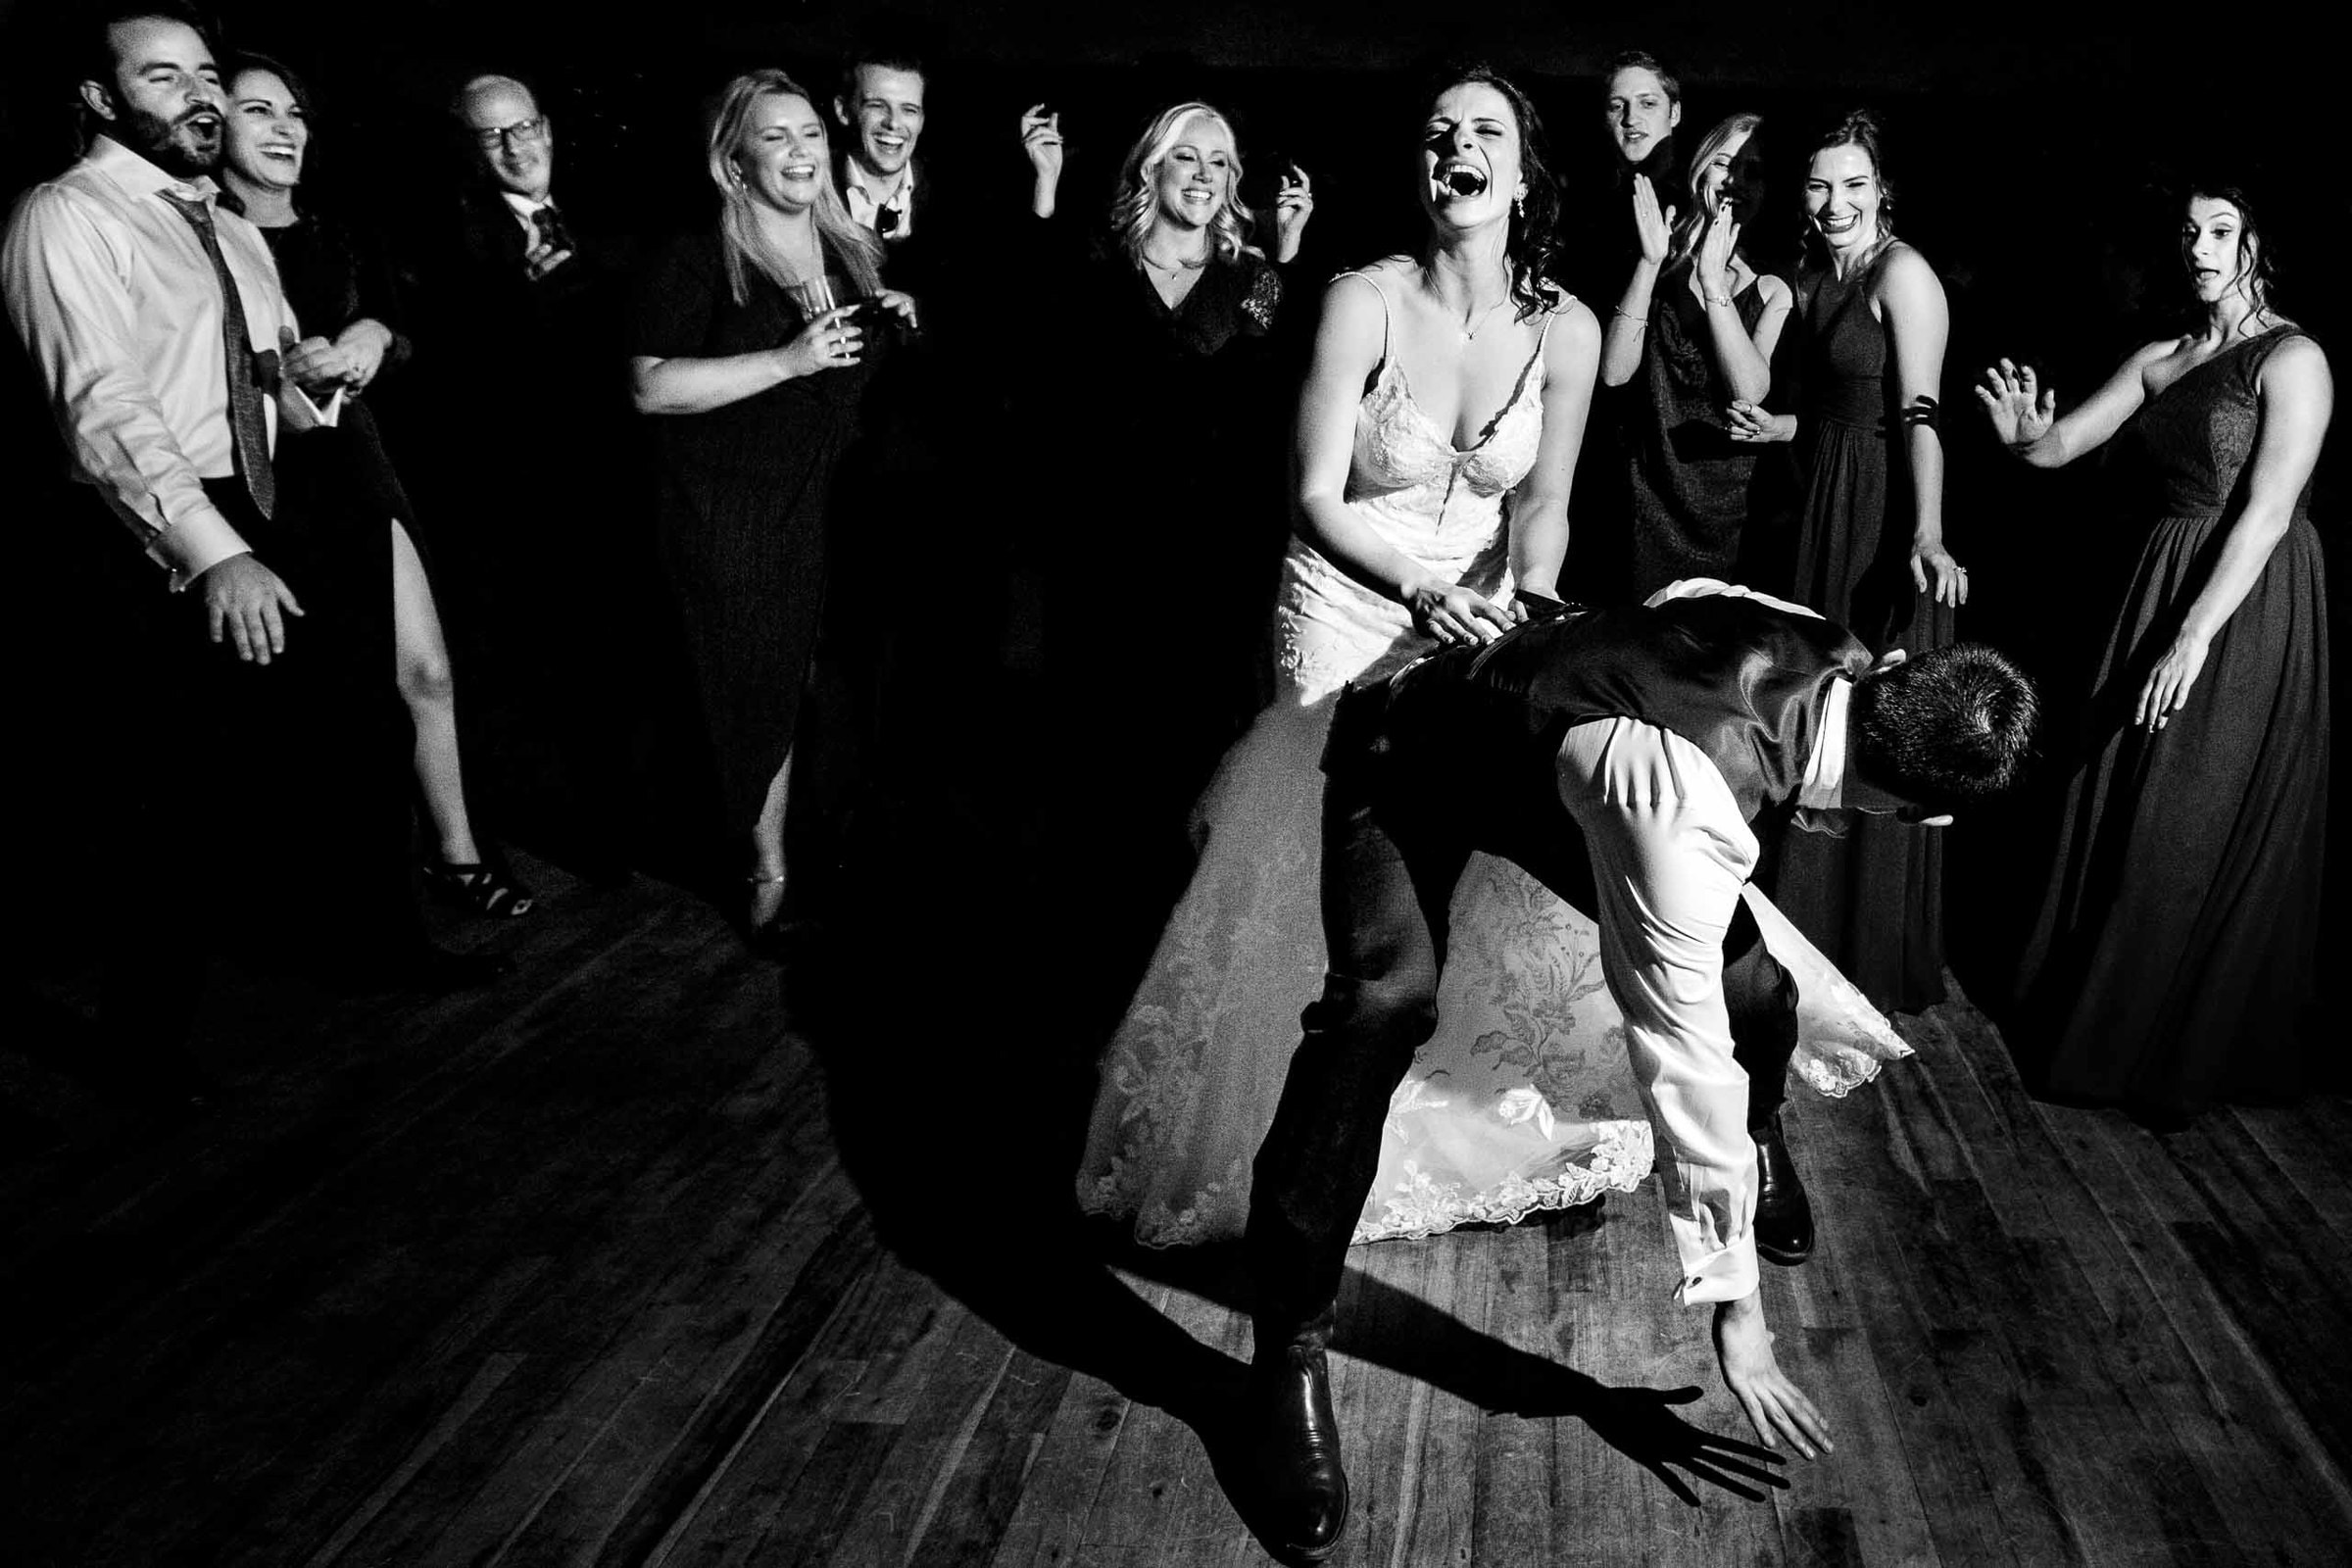 Super fun photo of a bride and groom dancing during their Sunriver Resort wedding reception in Oregon